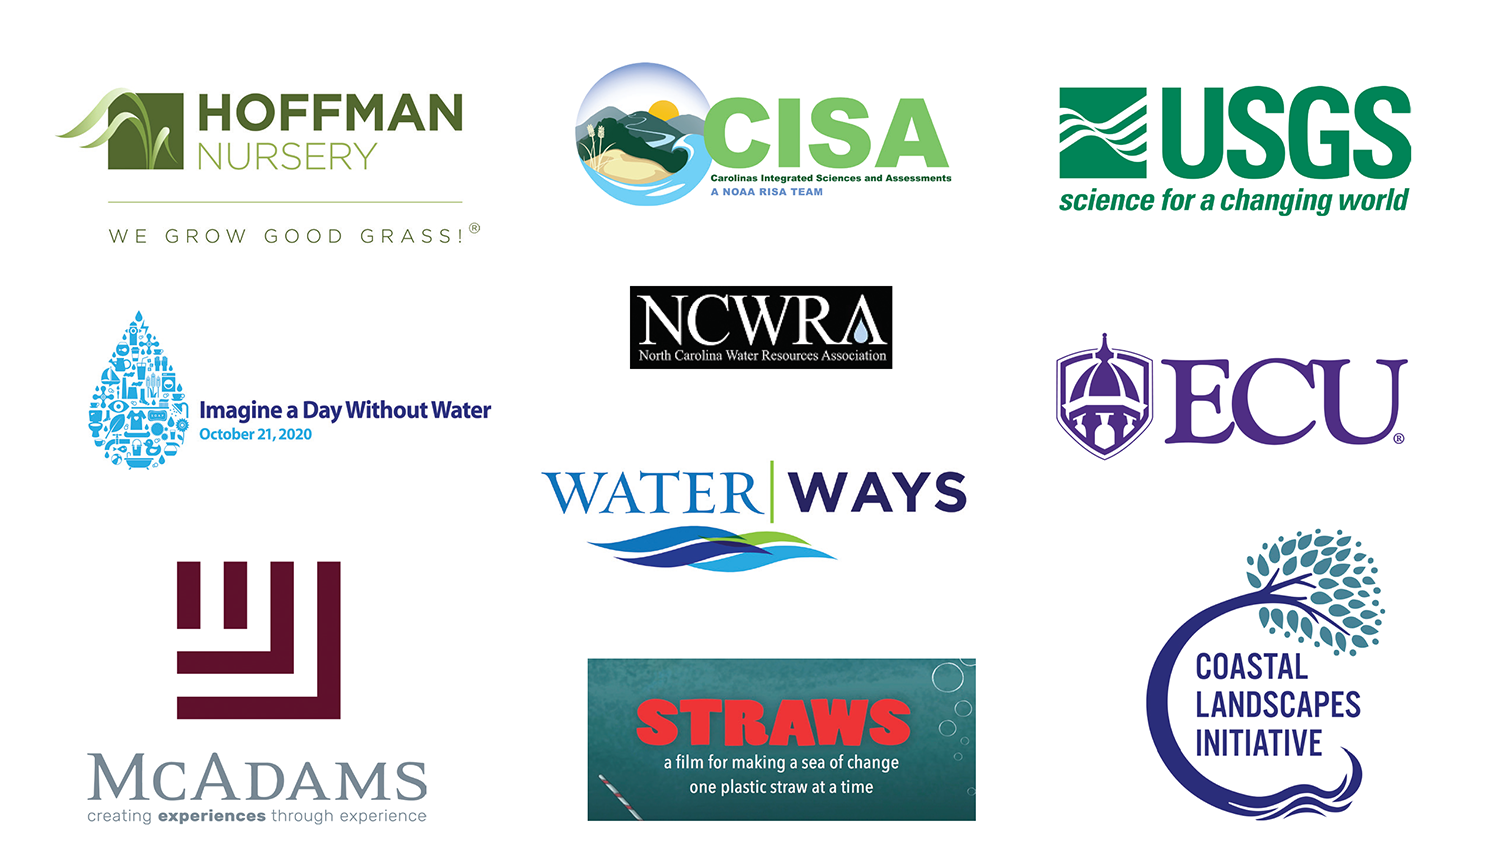 WRRI 2020 Annual Conference Sponsors are: Albemarle-Pamlico National Estuary Partnership, North Carolina Sea Grant, NC Space Grant, NC State CAAE, Clean Water Education Partnership, YSI–a Xylem Brand, MscConnell & Associates PC, North Carolina Humanities Council, Wake County, North Carolina Climate Office, Carolina Wetlands Association, Foster Lake & Pond Management, OTT HydroMet, Hoffman Nursery, Carolina Integrated Science and Assessments, U.S. Geological Survey, North Carolina Water Resources Association, East Carolina University, Imagine a Day Without Water, Smithsonian Institution's Water|Ways, McAdams, Straws the film, and the Coastal Landscapes Initiative.